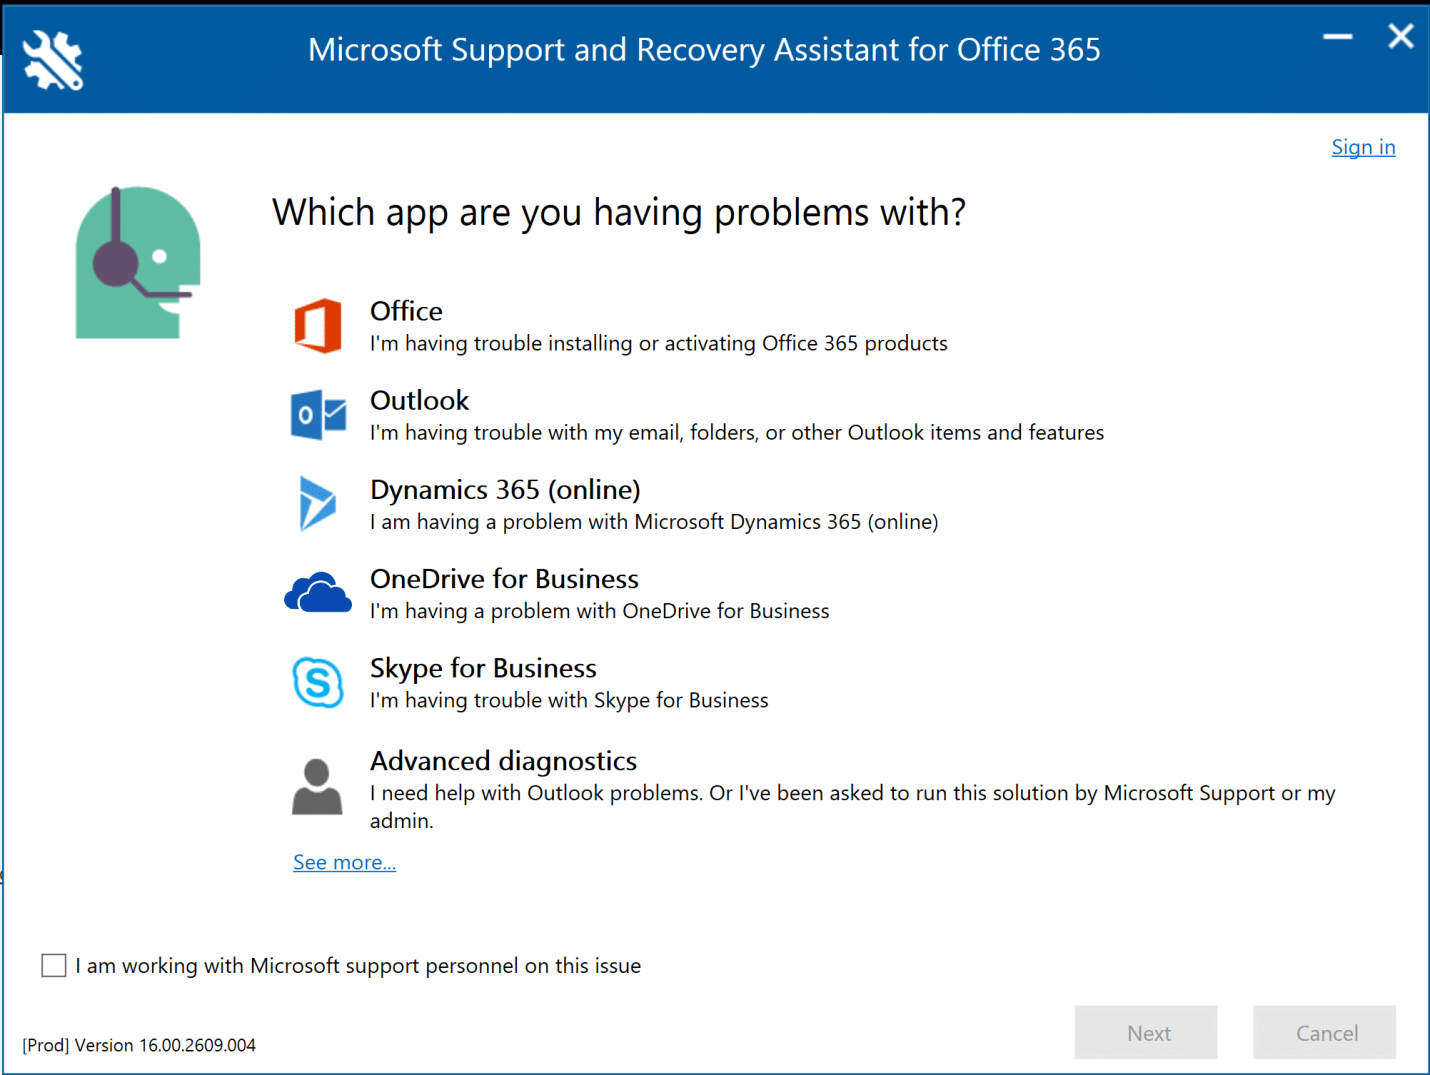 Office 365 Troubleshooting Microsoft Support and Recovery Assistant